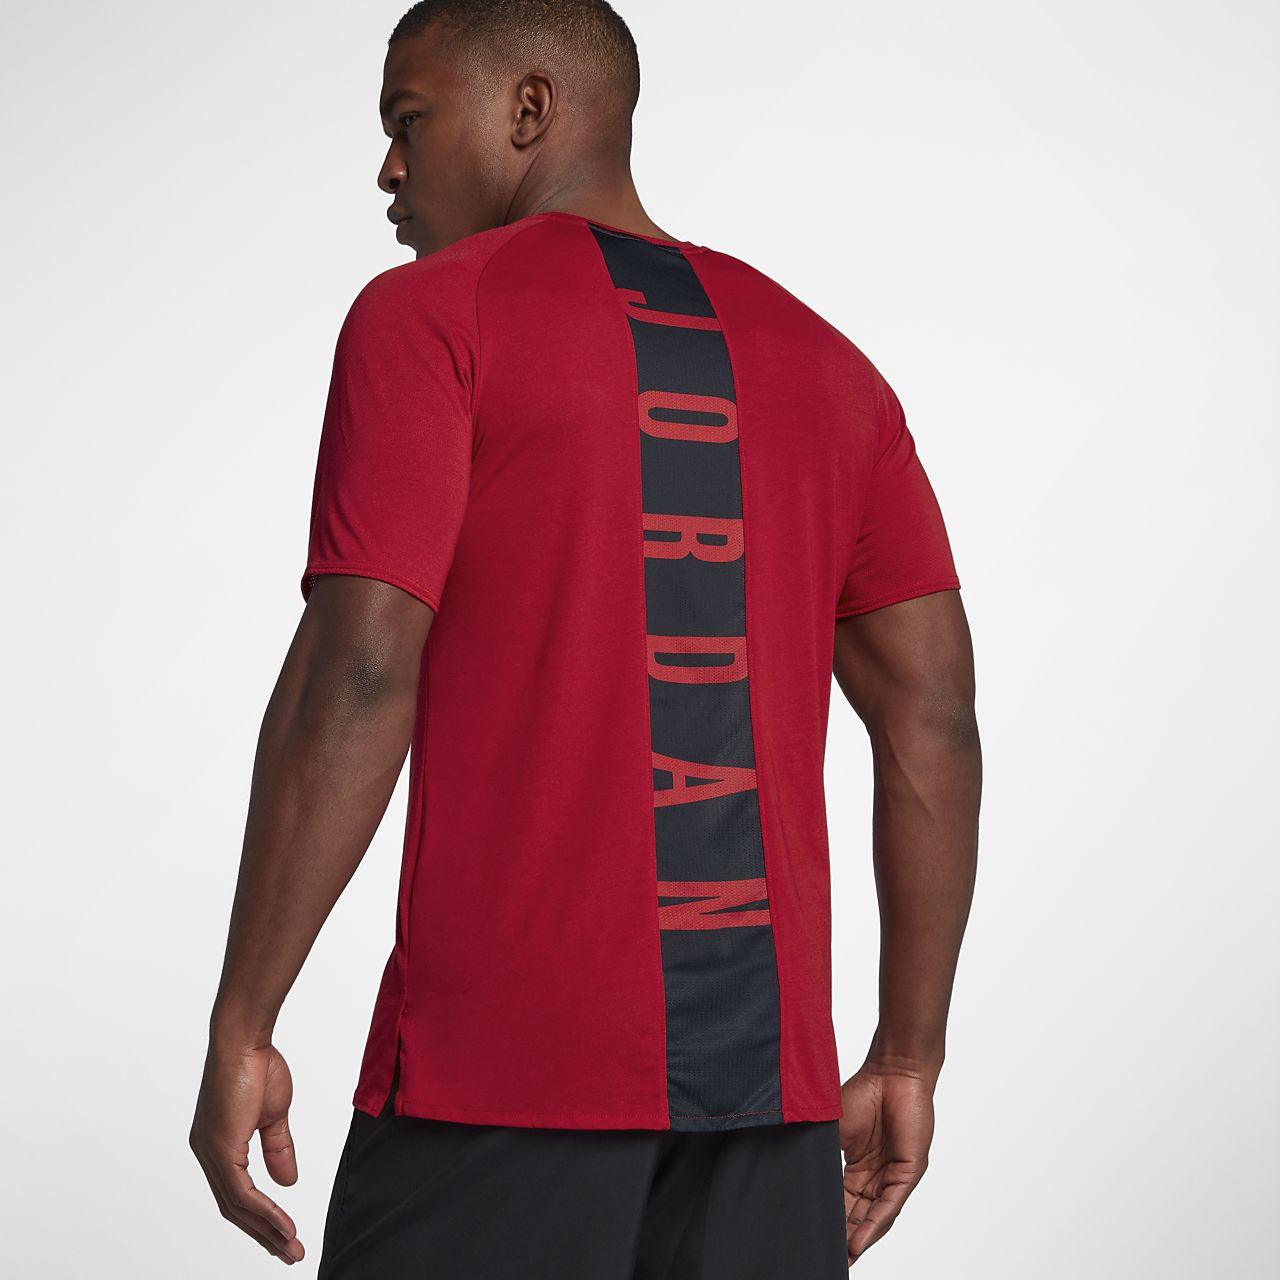 c090c9afa73 Jordan 23 Alpha Men's Short-Sleeve Training Top. Nike.com